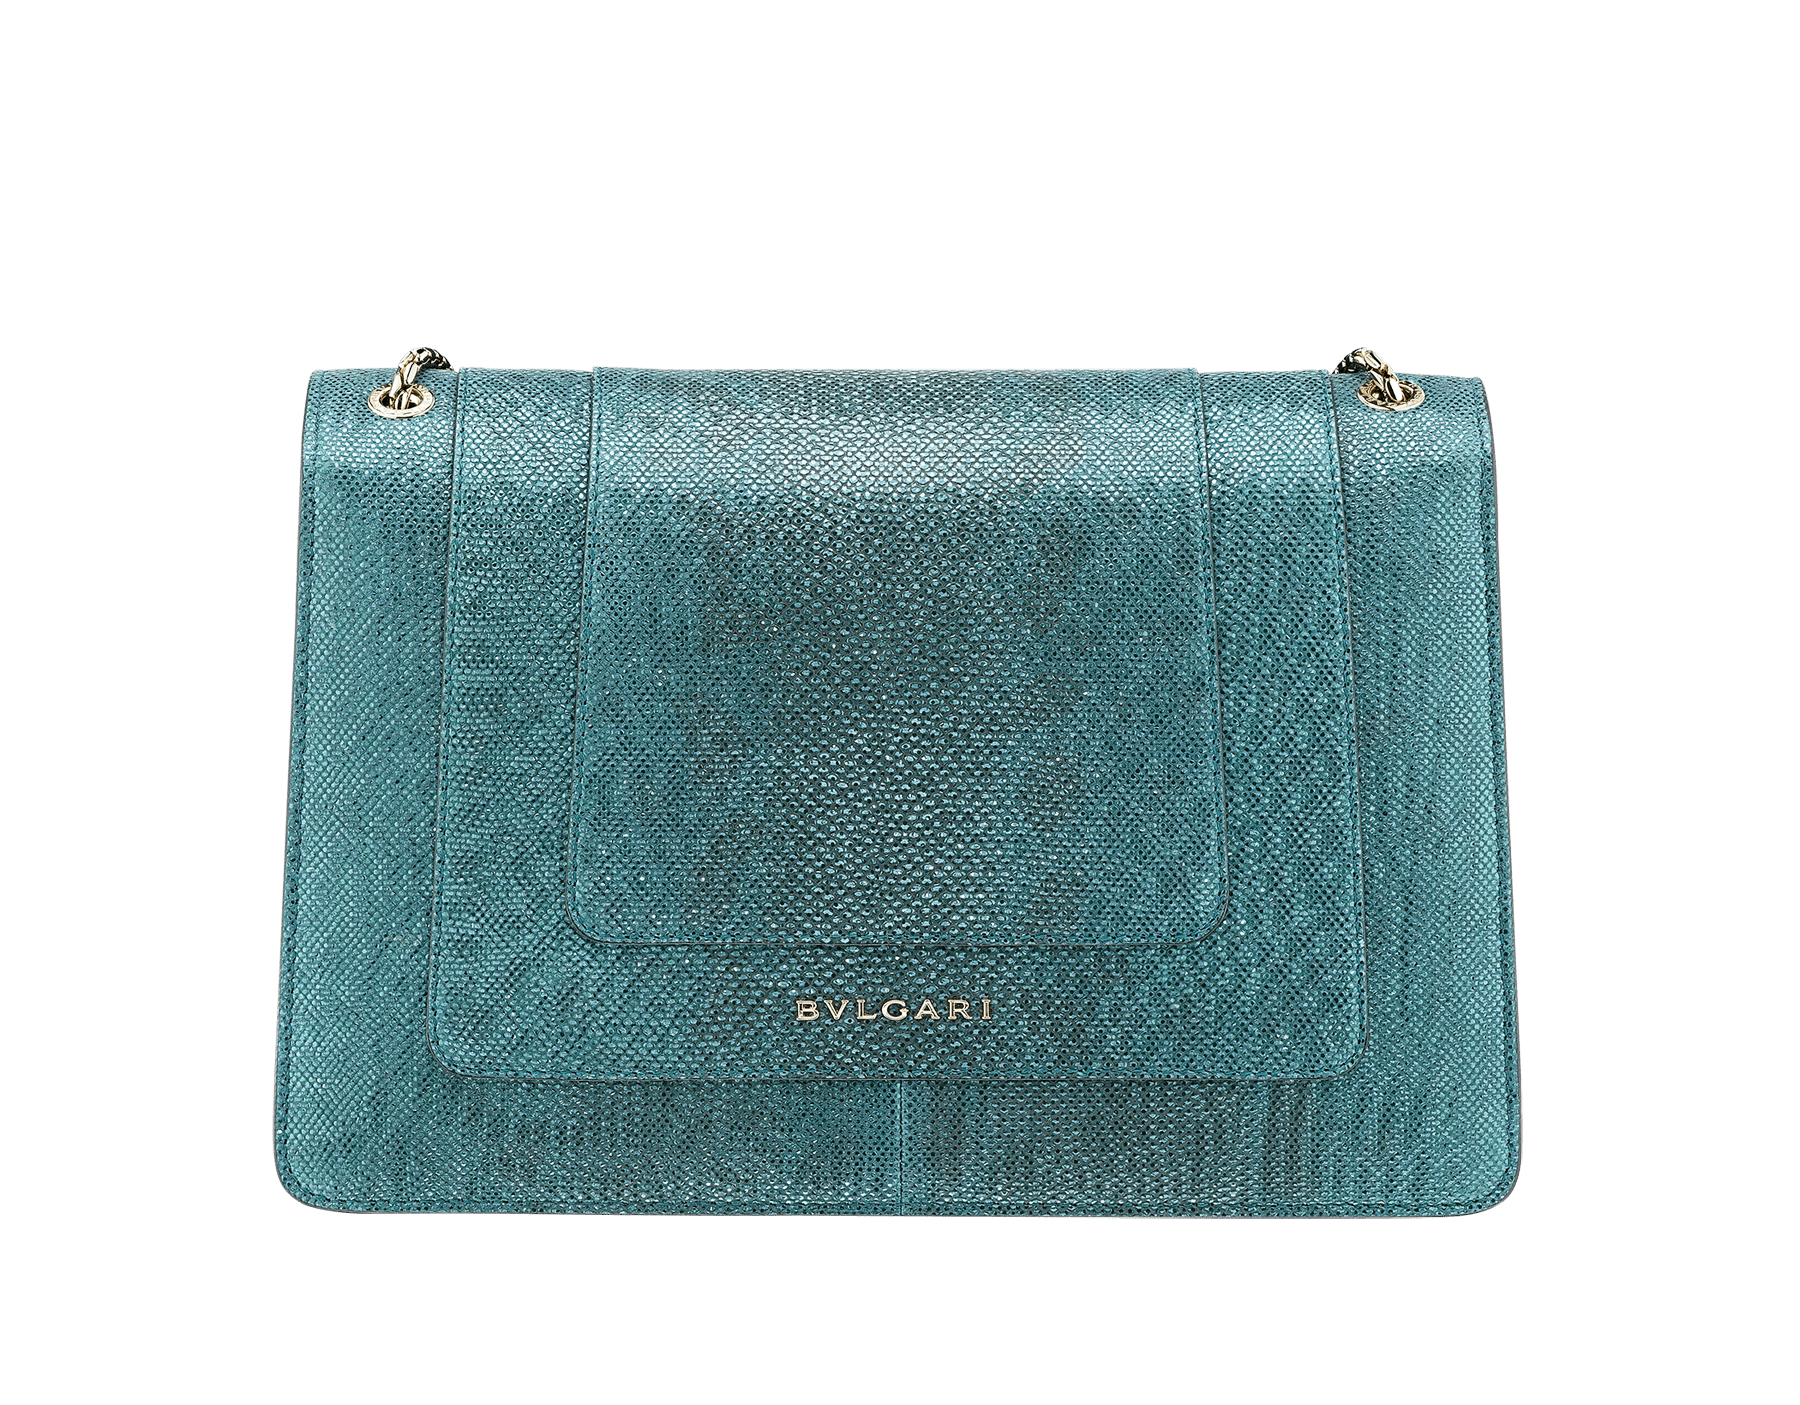 """""""Serpenti Forever"""" shoulder bag in deep jade metallic karung skin. Iconic snakehead closure in light gold-plated brass enriched with black and glitter deep jade enamel and black onyx eyes. 287940 image 3"""